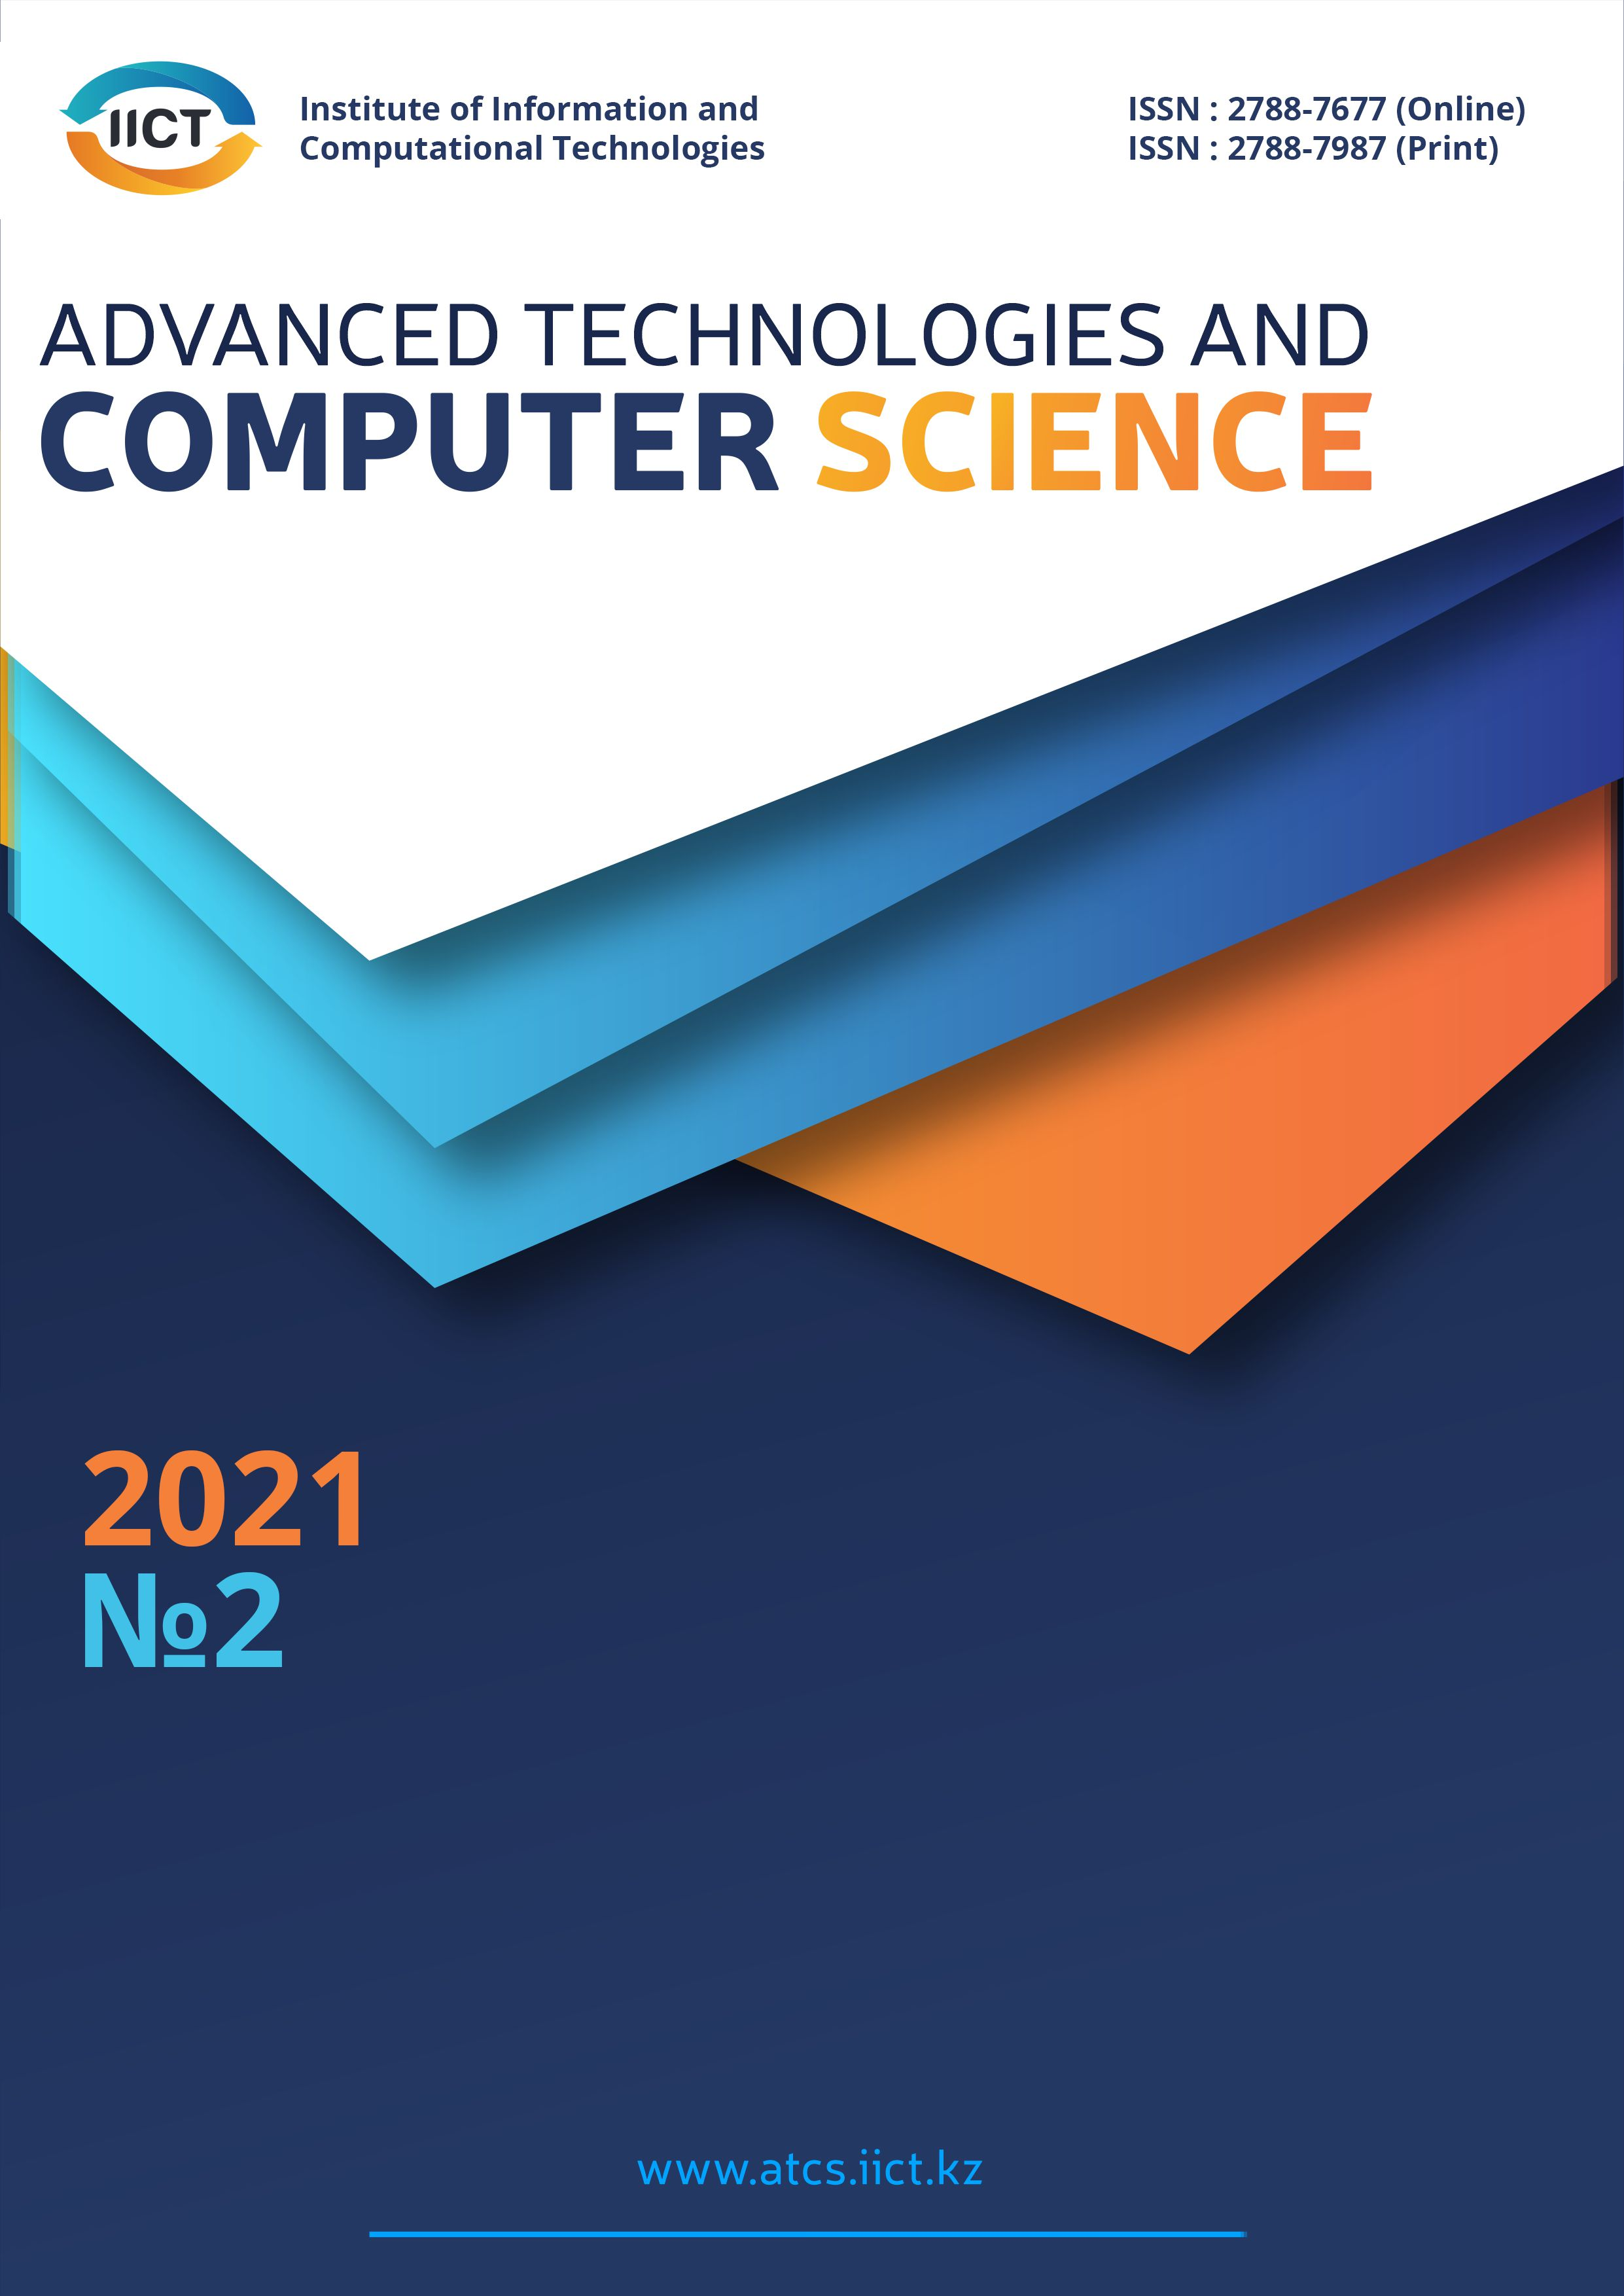 View No. 2 (2021): Advanced technologies and computer science